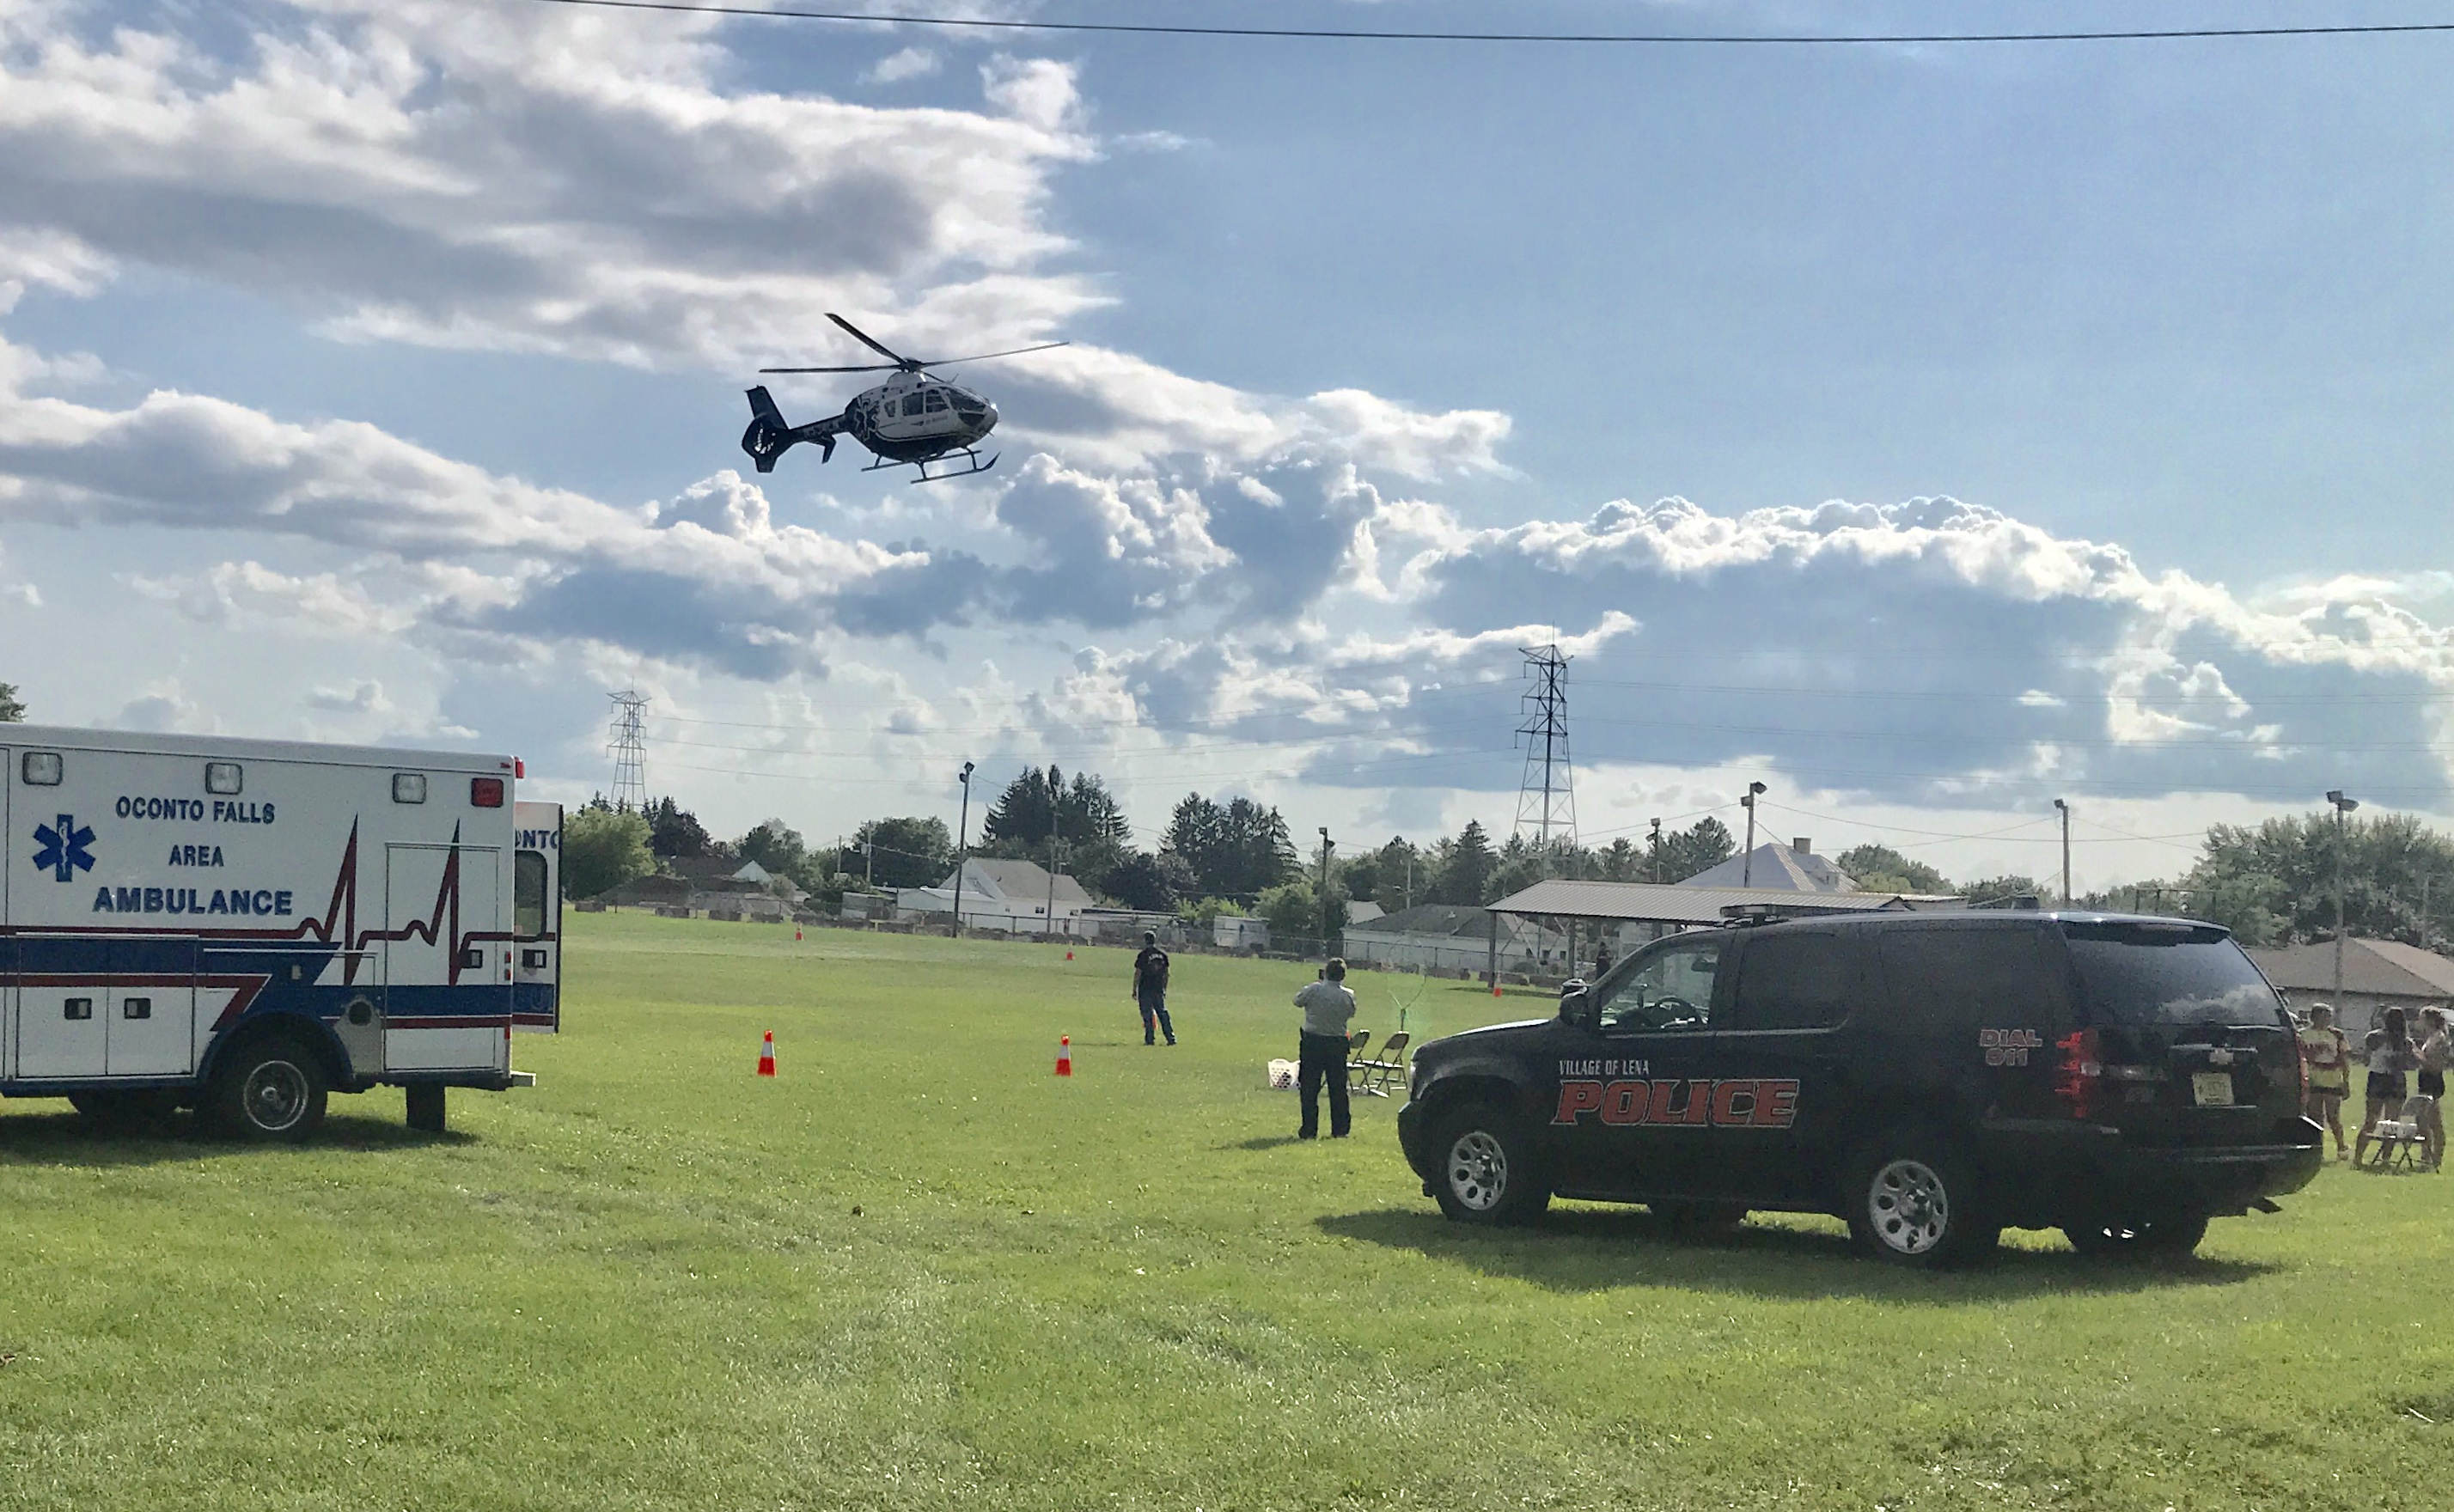 The Eagle III rescue helicopter circles for a landing at the National Night Out event at St. Anne's Parish grounds in Lena on Aug. 6, 2019.